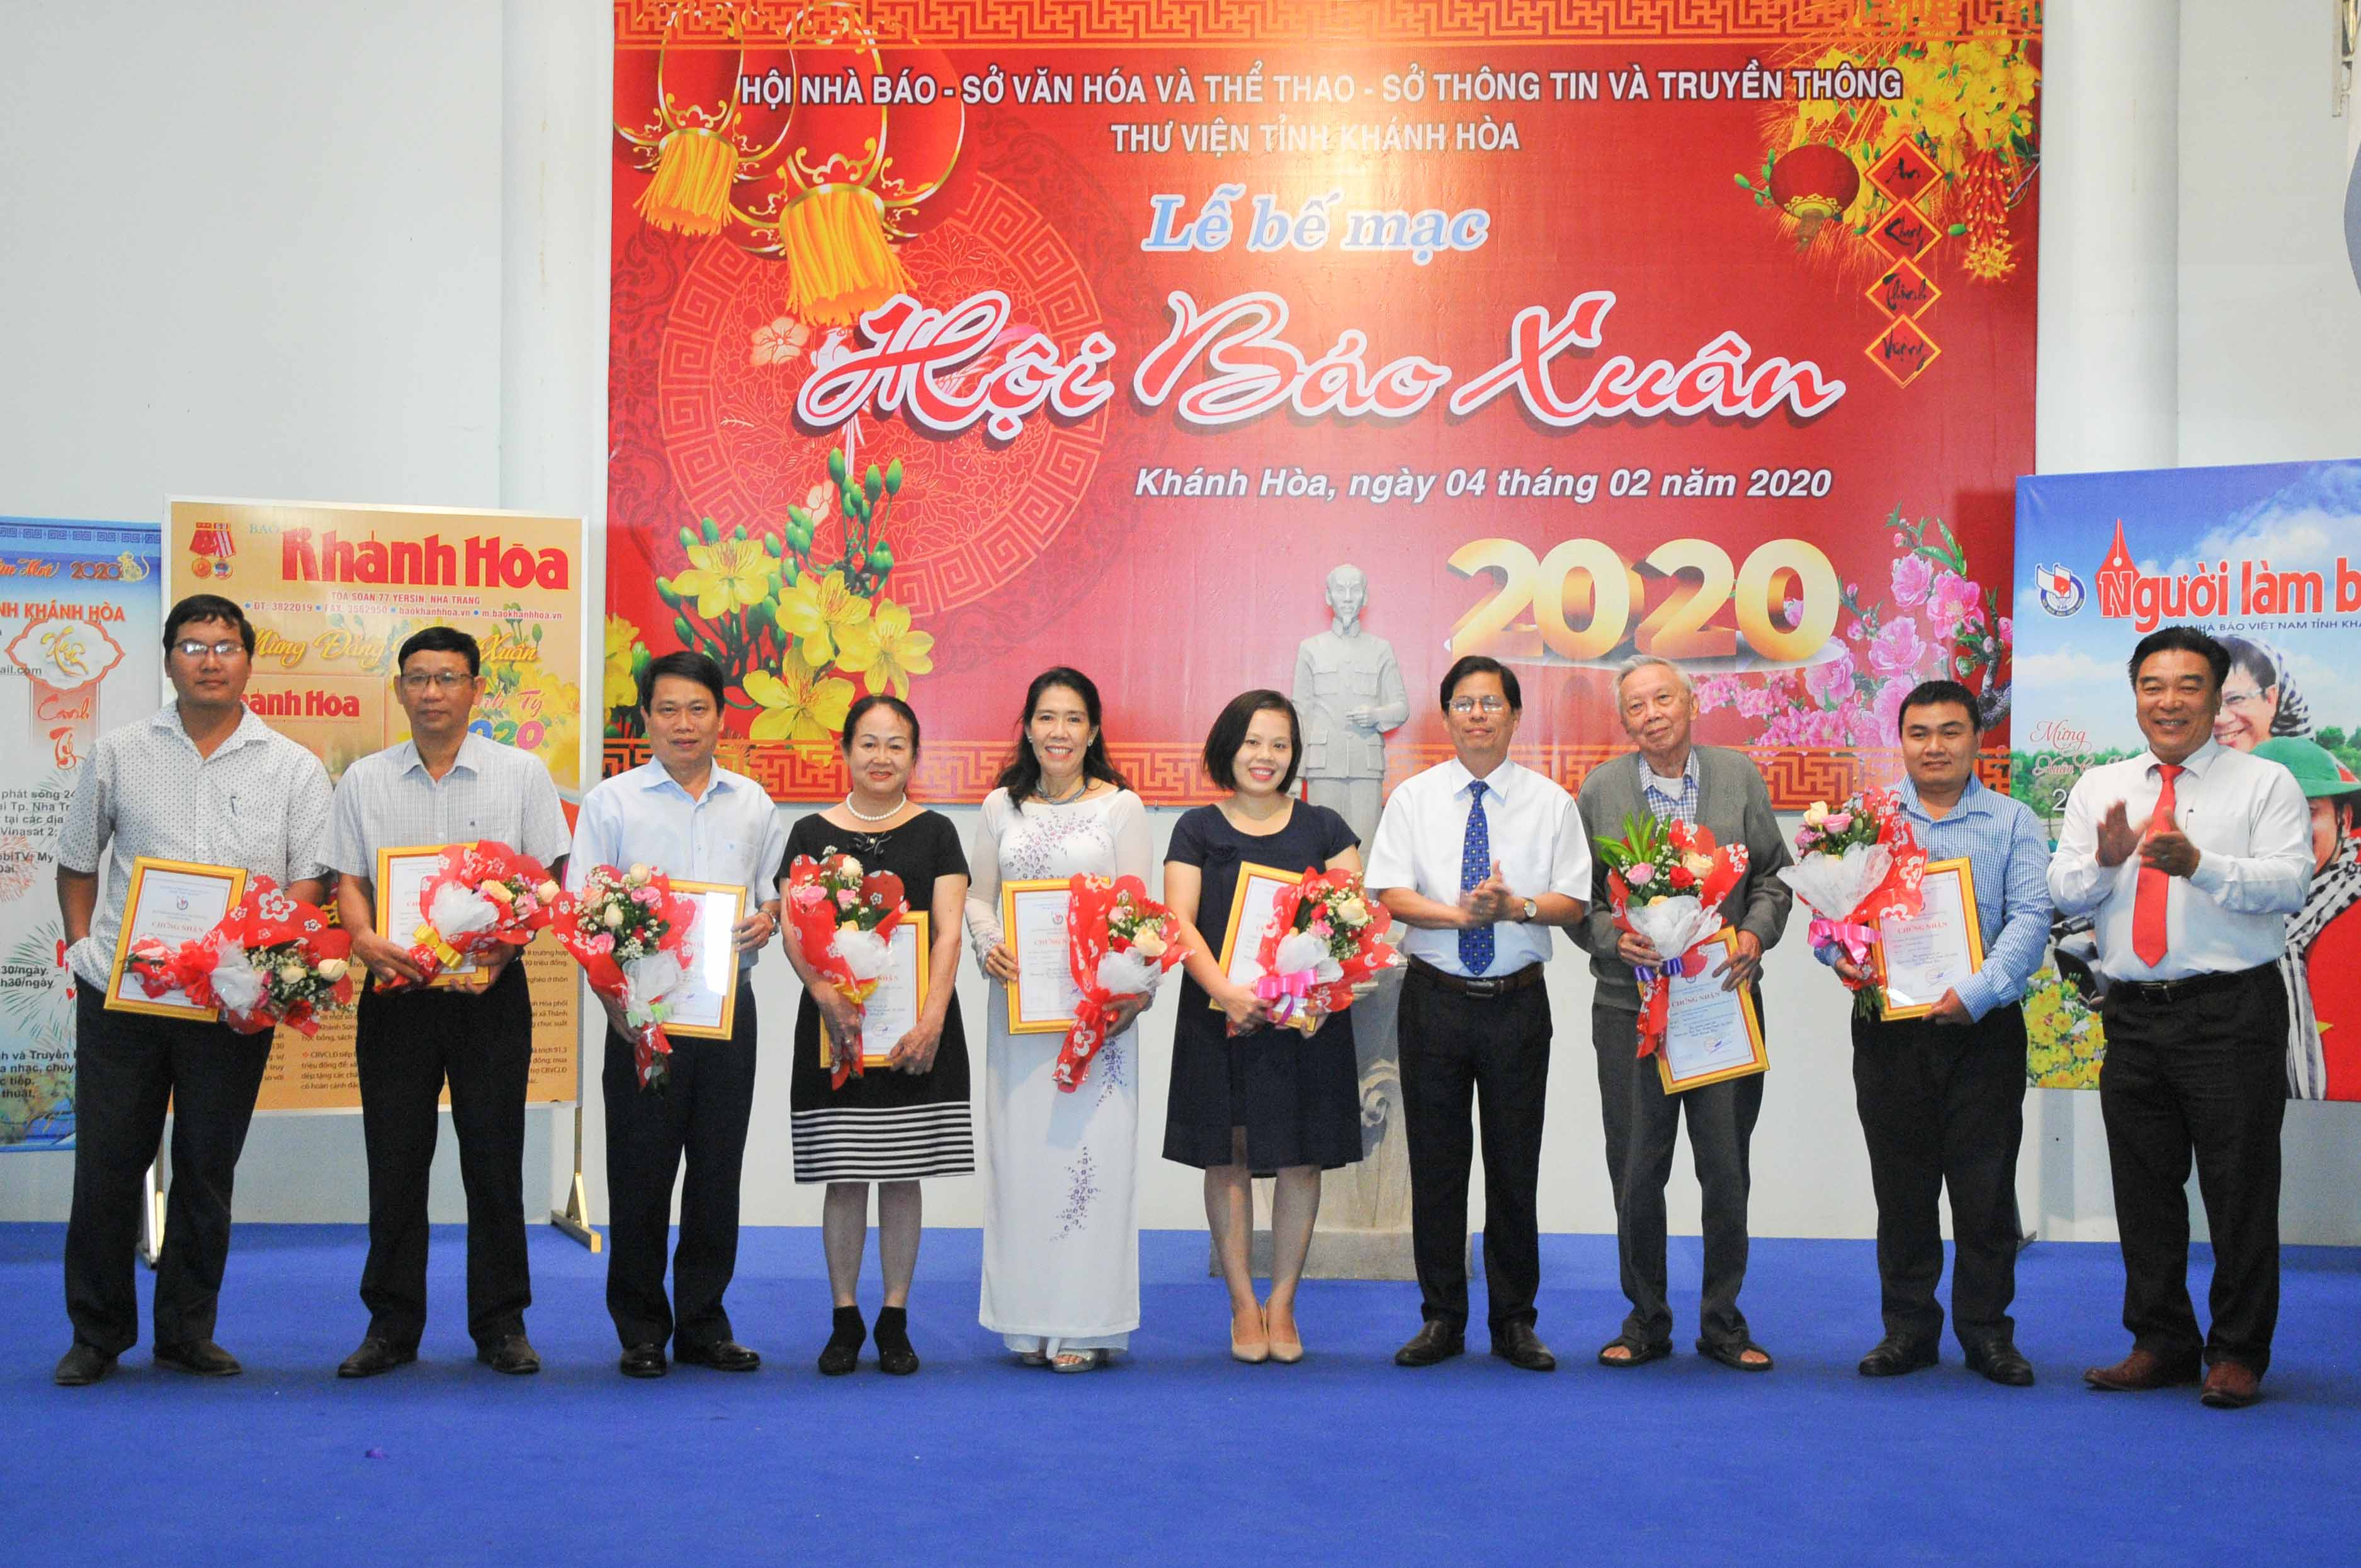 Nguyen Tan Tuan (fourth from right) and leader of Khanh Hoa Province's Journalists' Association offering prizes to journalists with excellent works